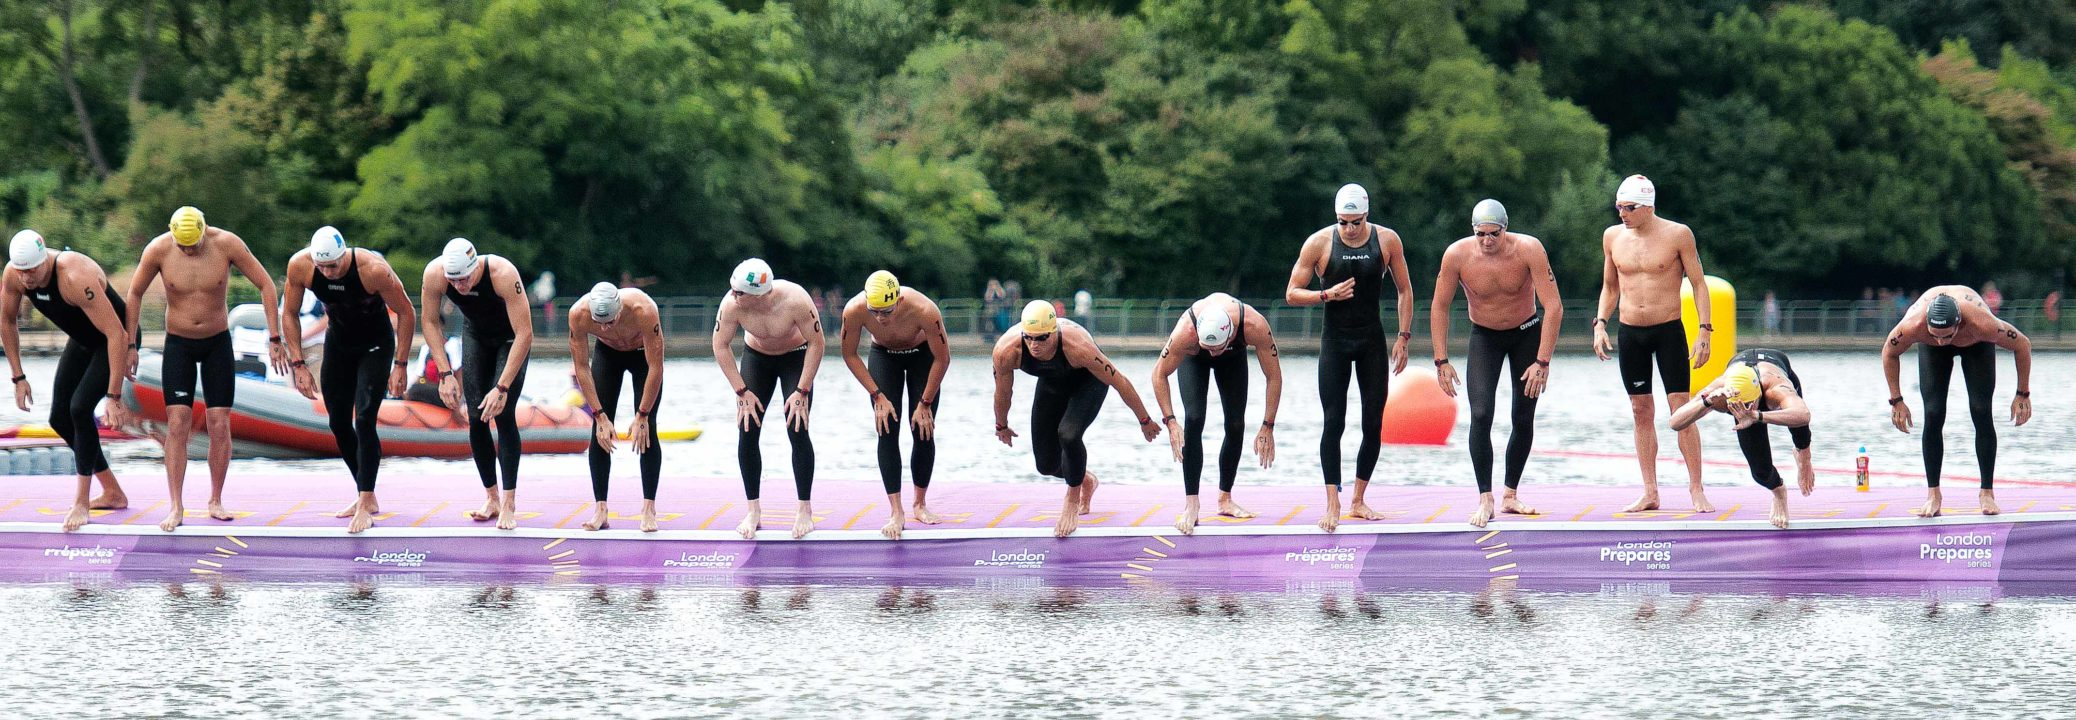 17th European Open Water Swimming Cup Series Kicks off Friday